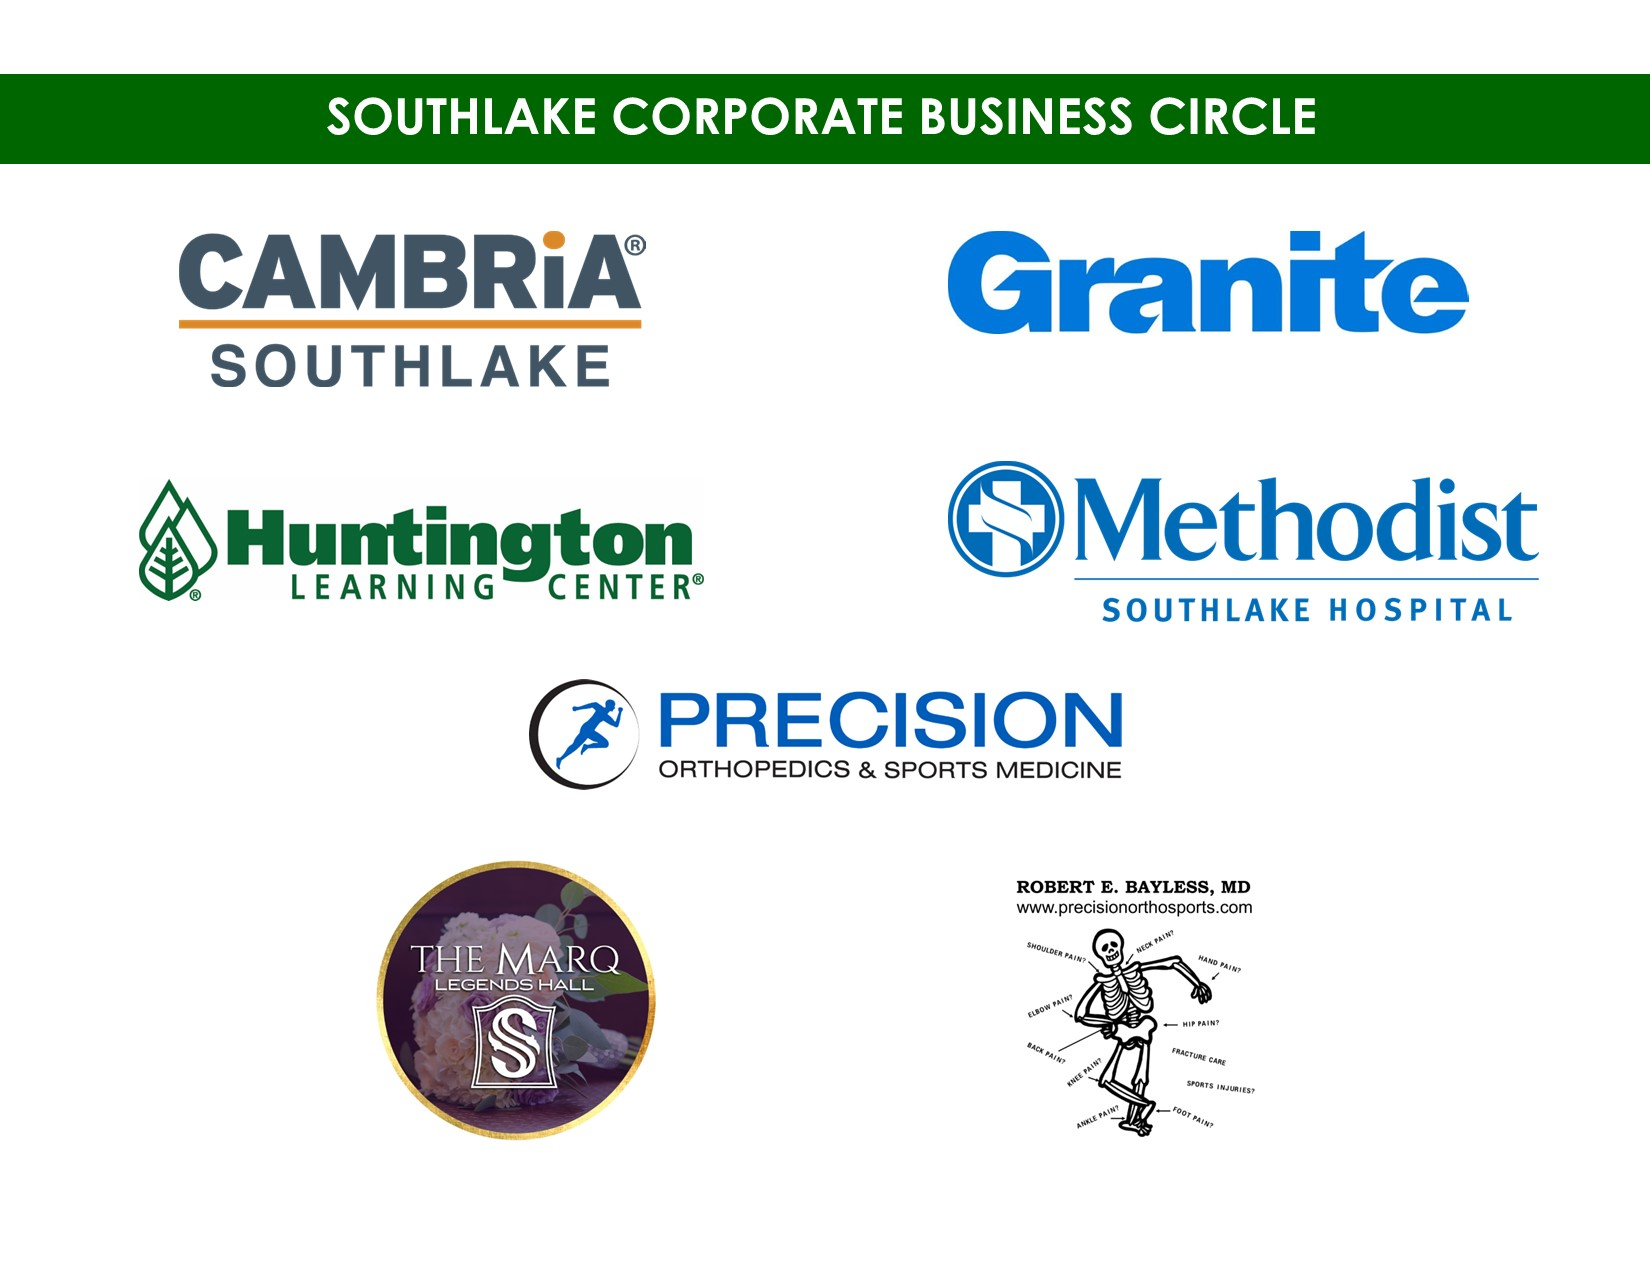 SOUHTLAKE CORPORATE BUSINESS CIRCLE